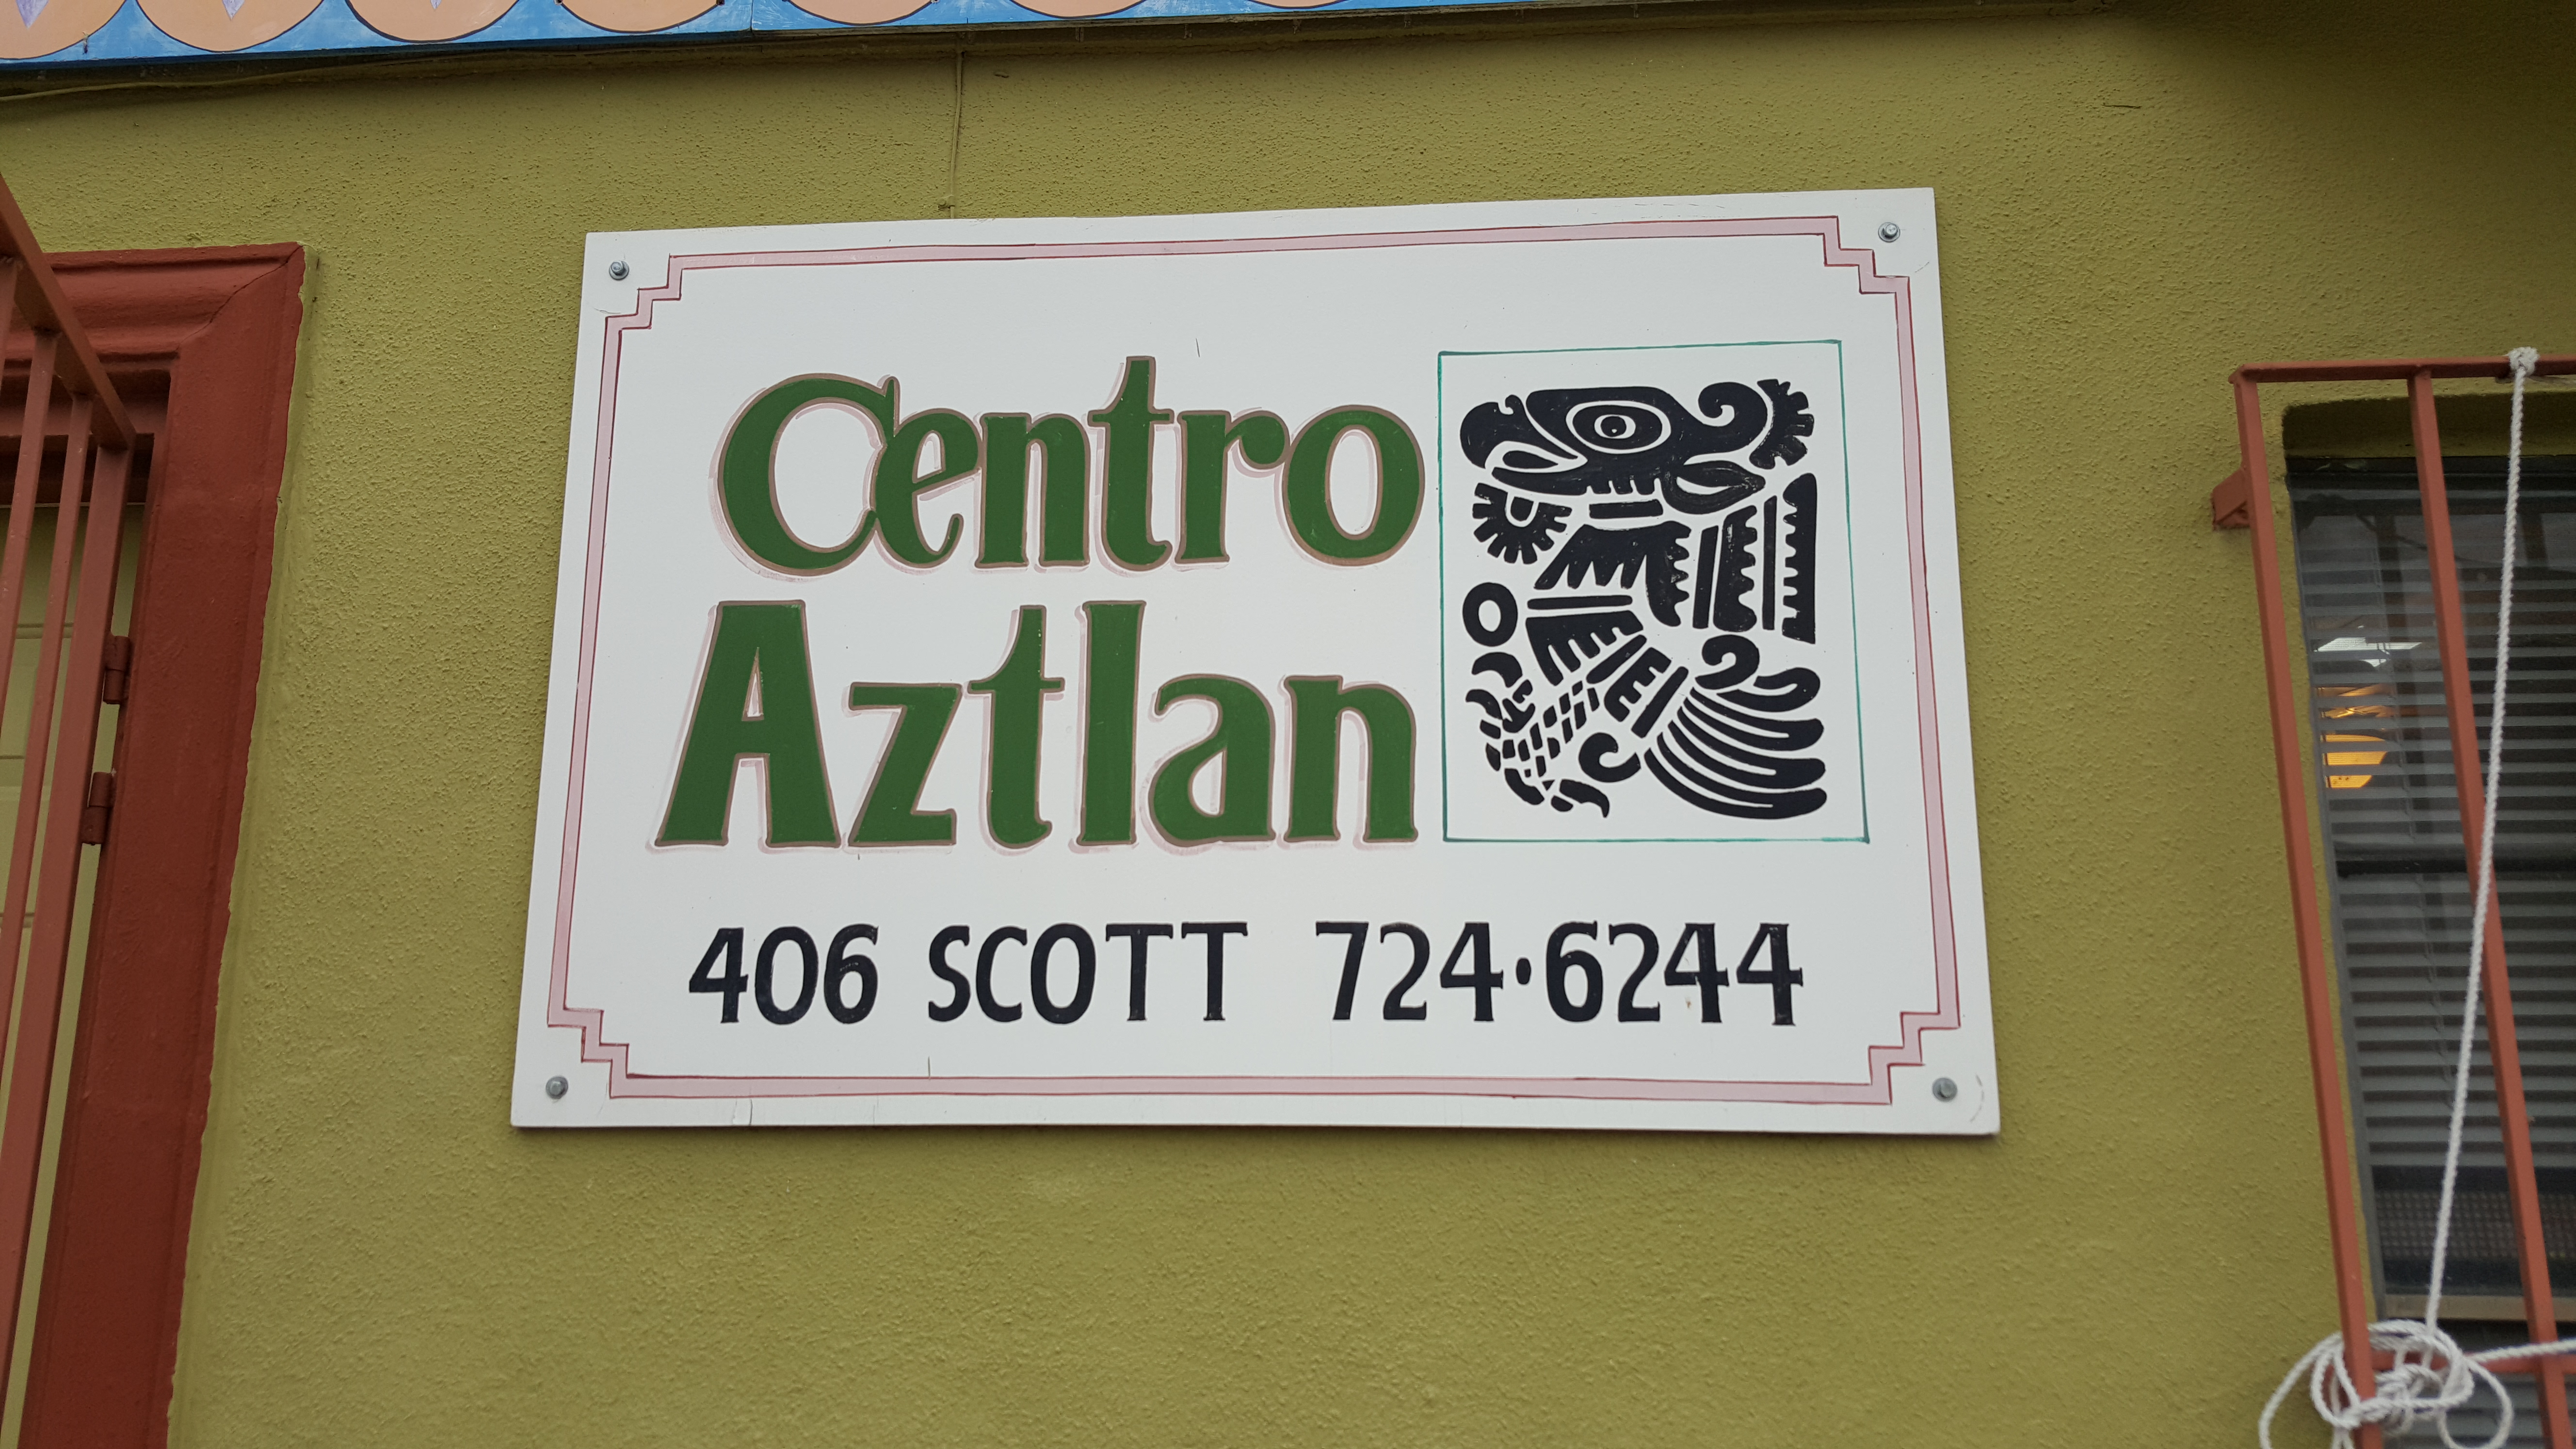 Centro Aztlan Provides Services For Local Immigrants